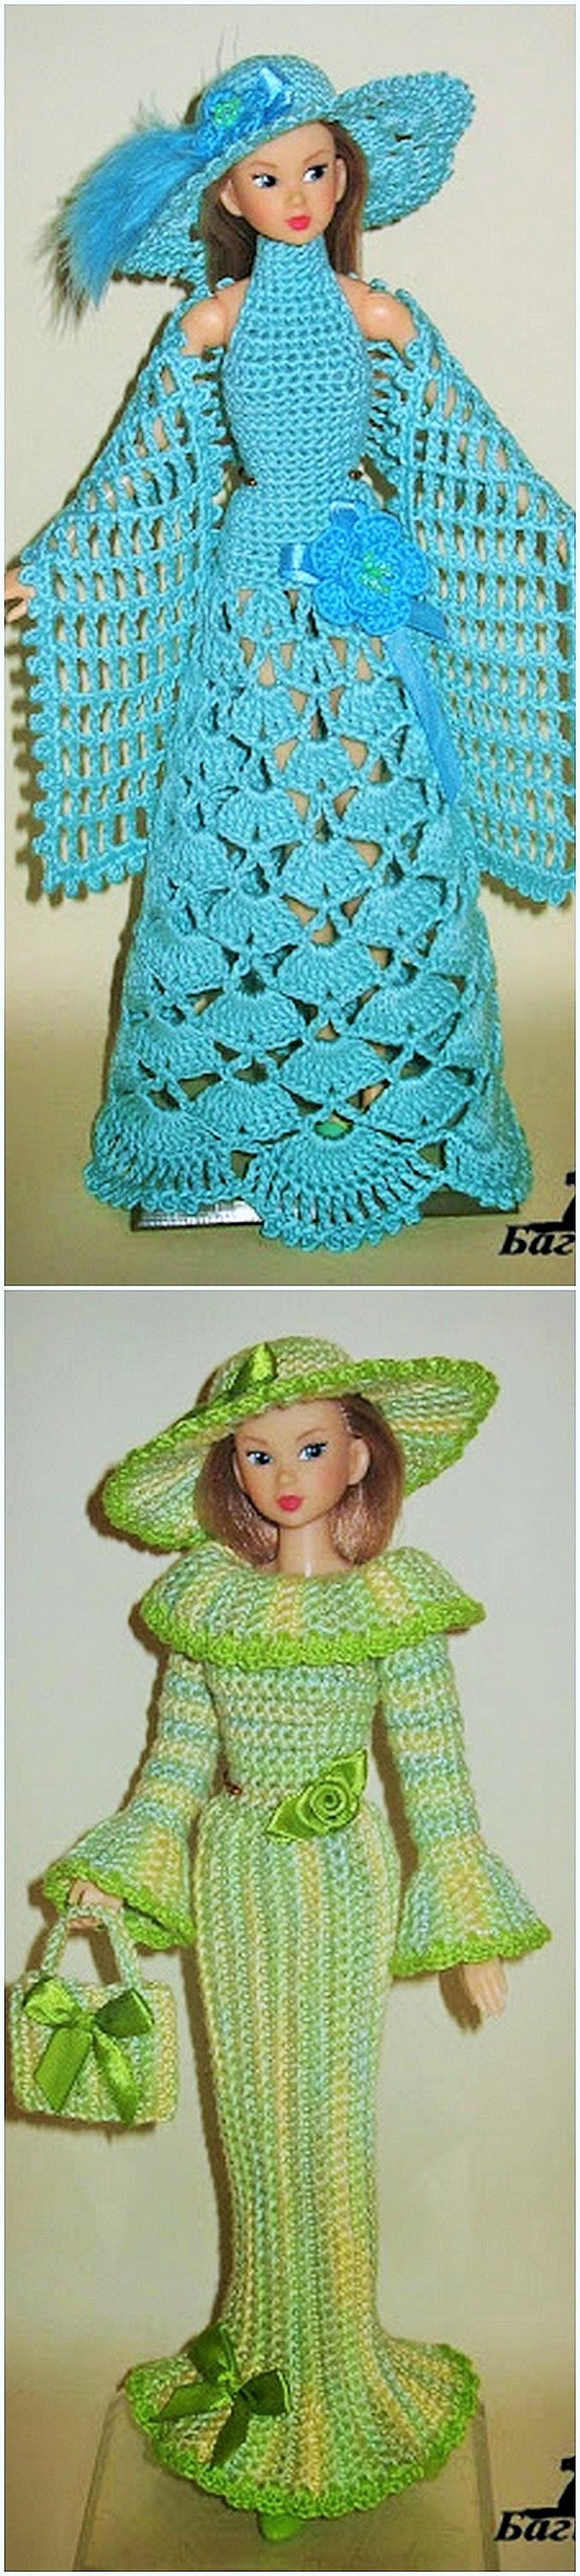 Home made Diy crochet Ideas-4